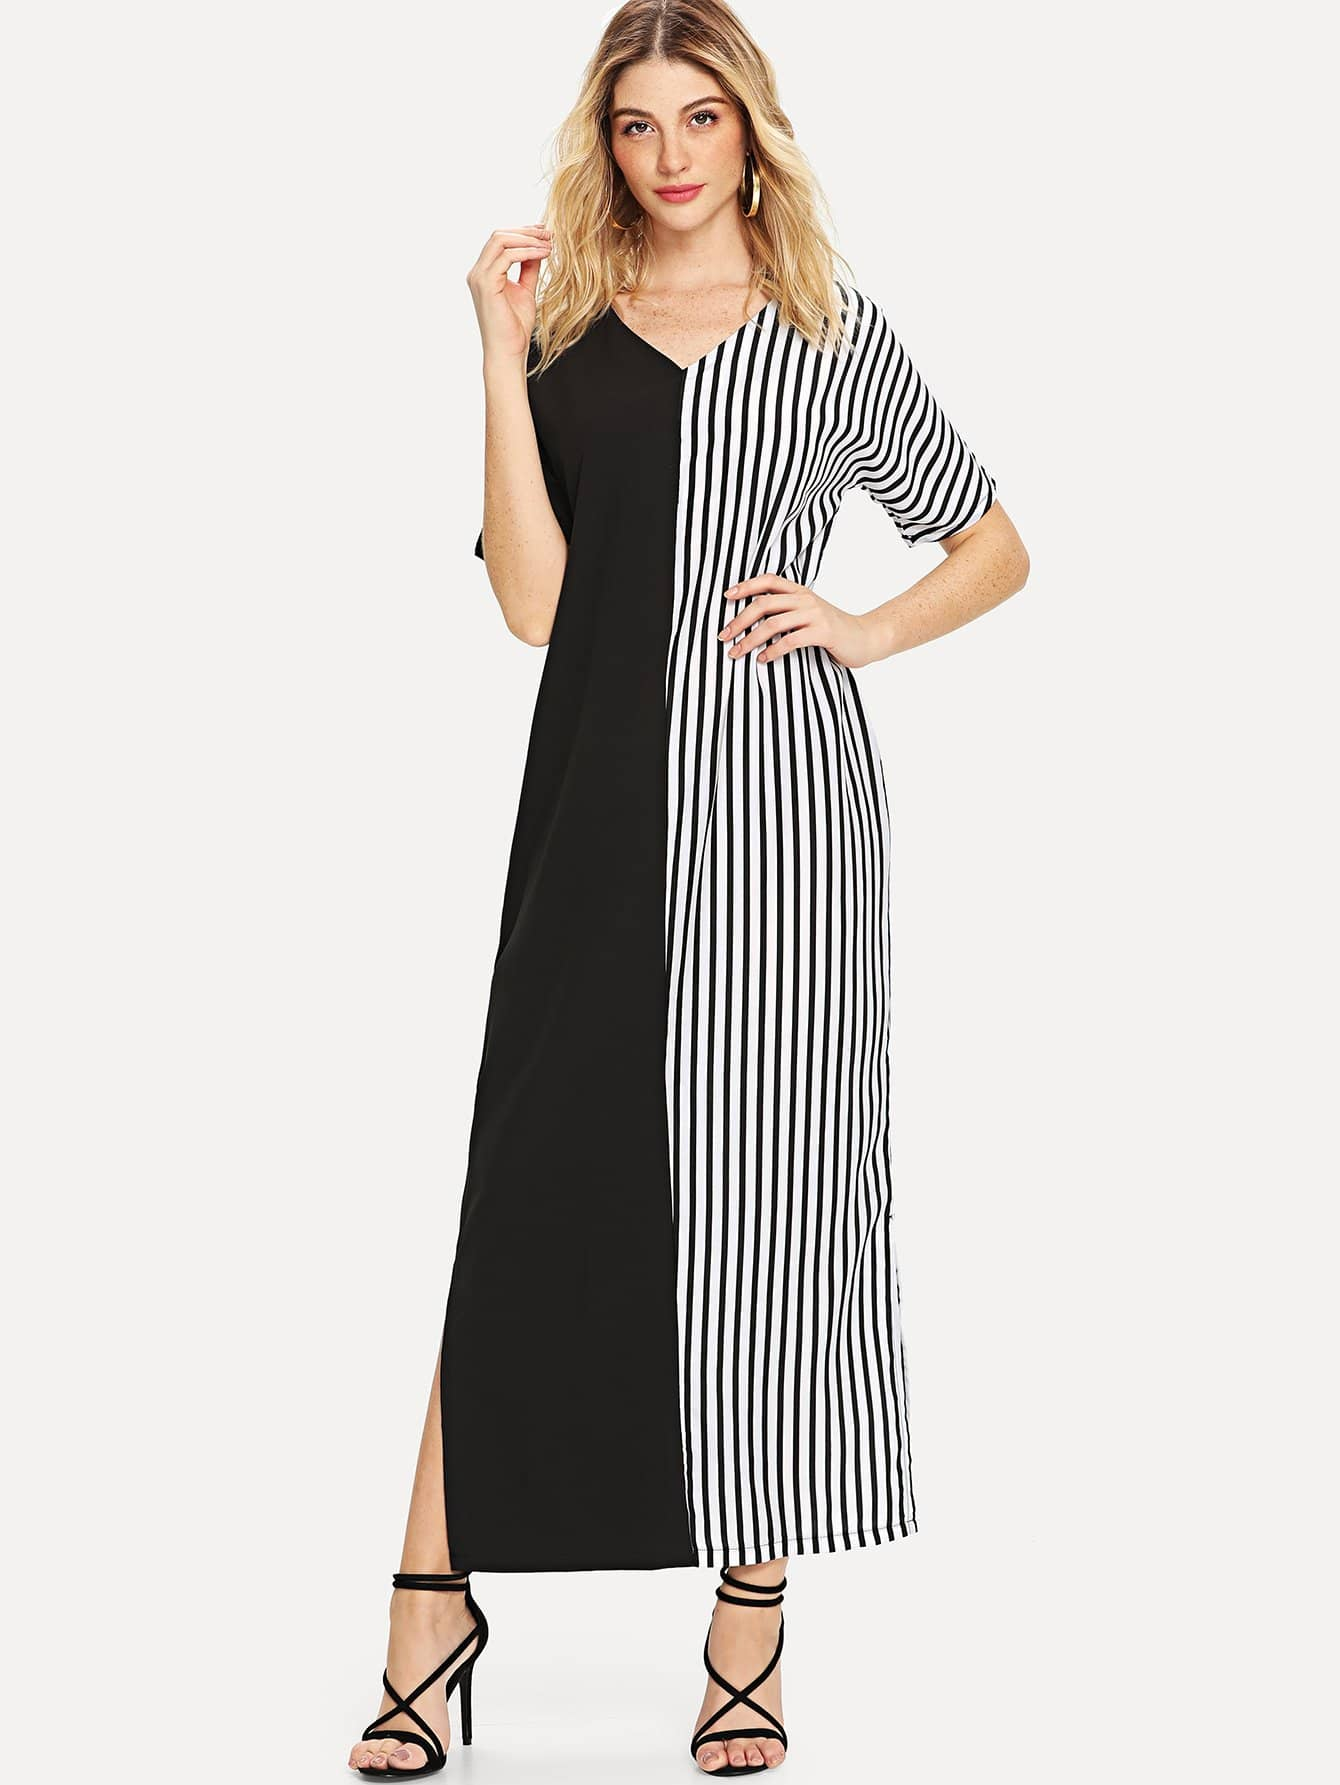 Stripe Contrast Two Tone Longline Dress полотенце для ванной two tone grafik quelle quelle 239974